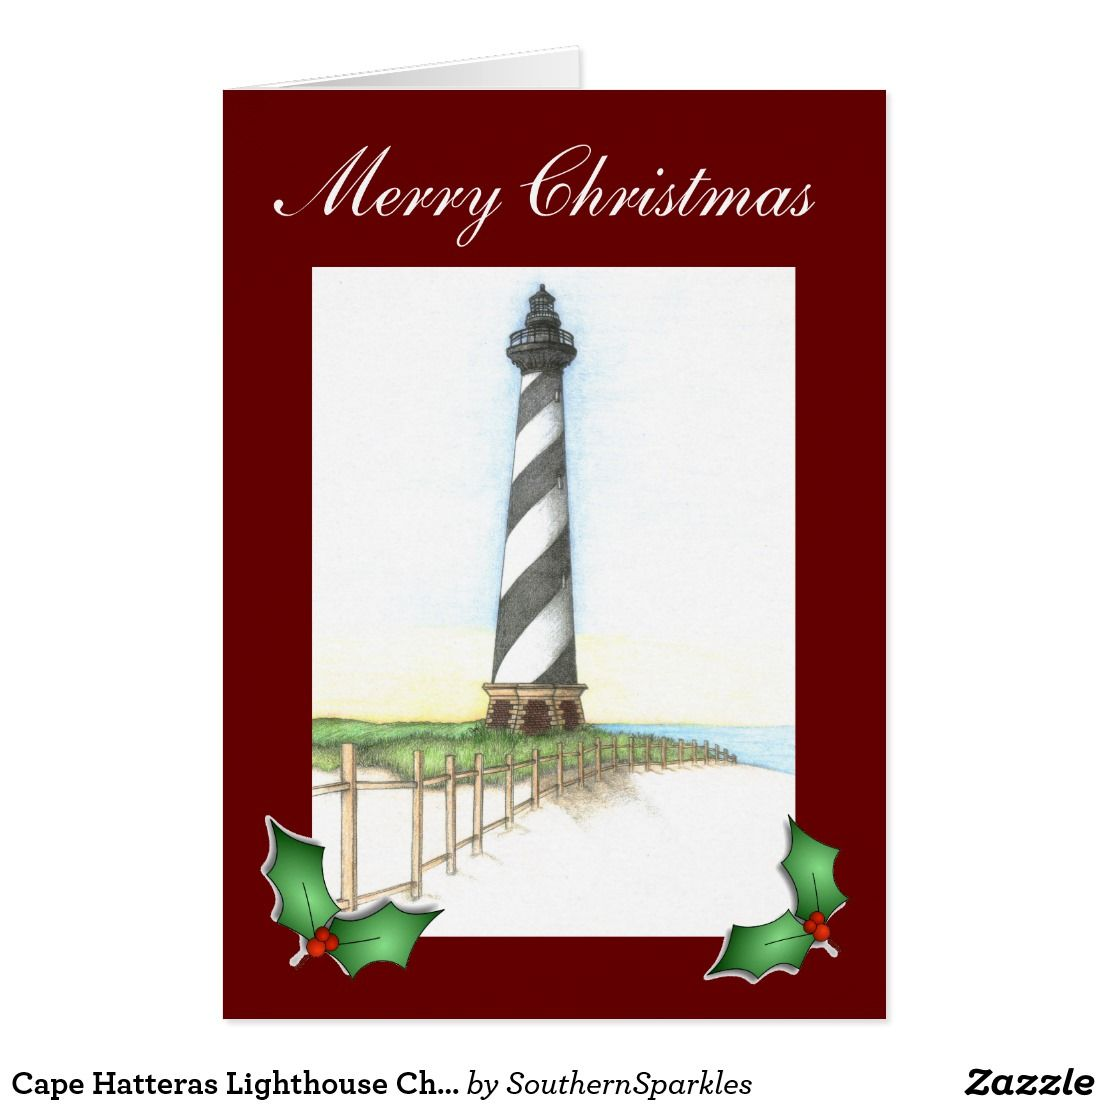 Cape Hatteras Lighthouse Christmas Card | Southern Sparkles on ...